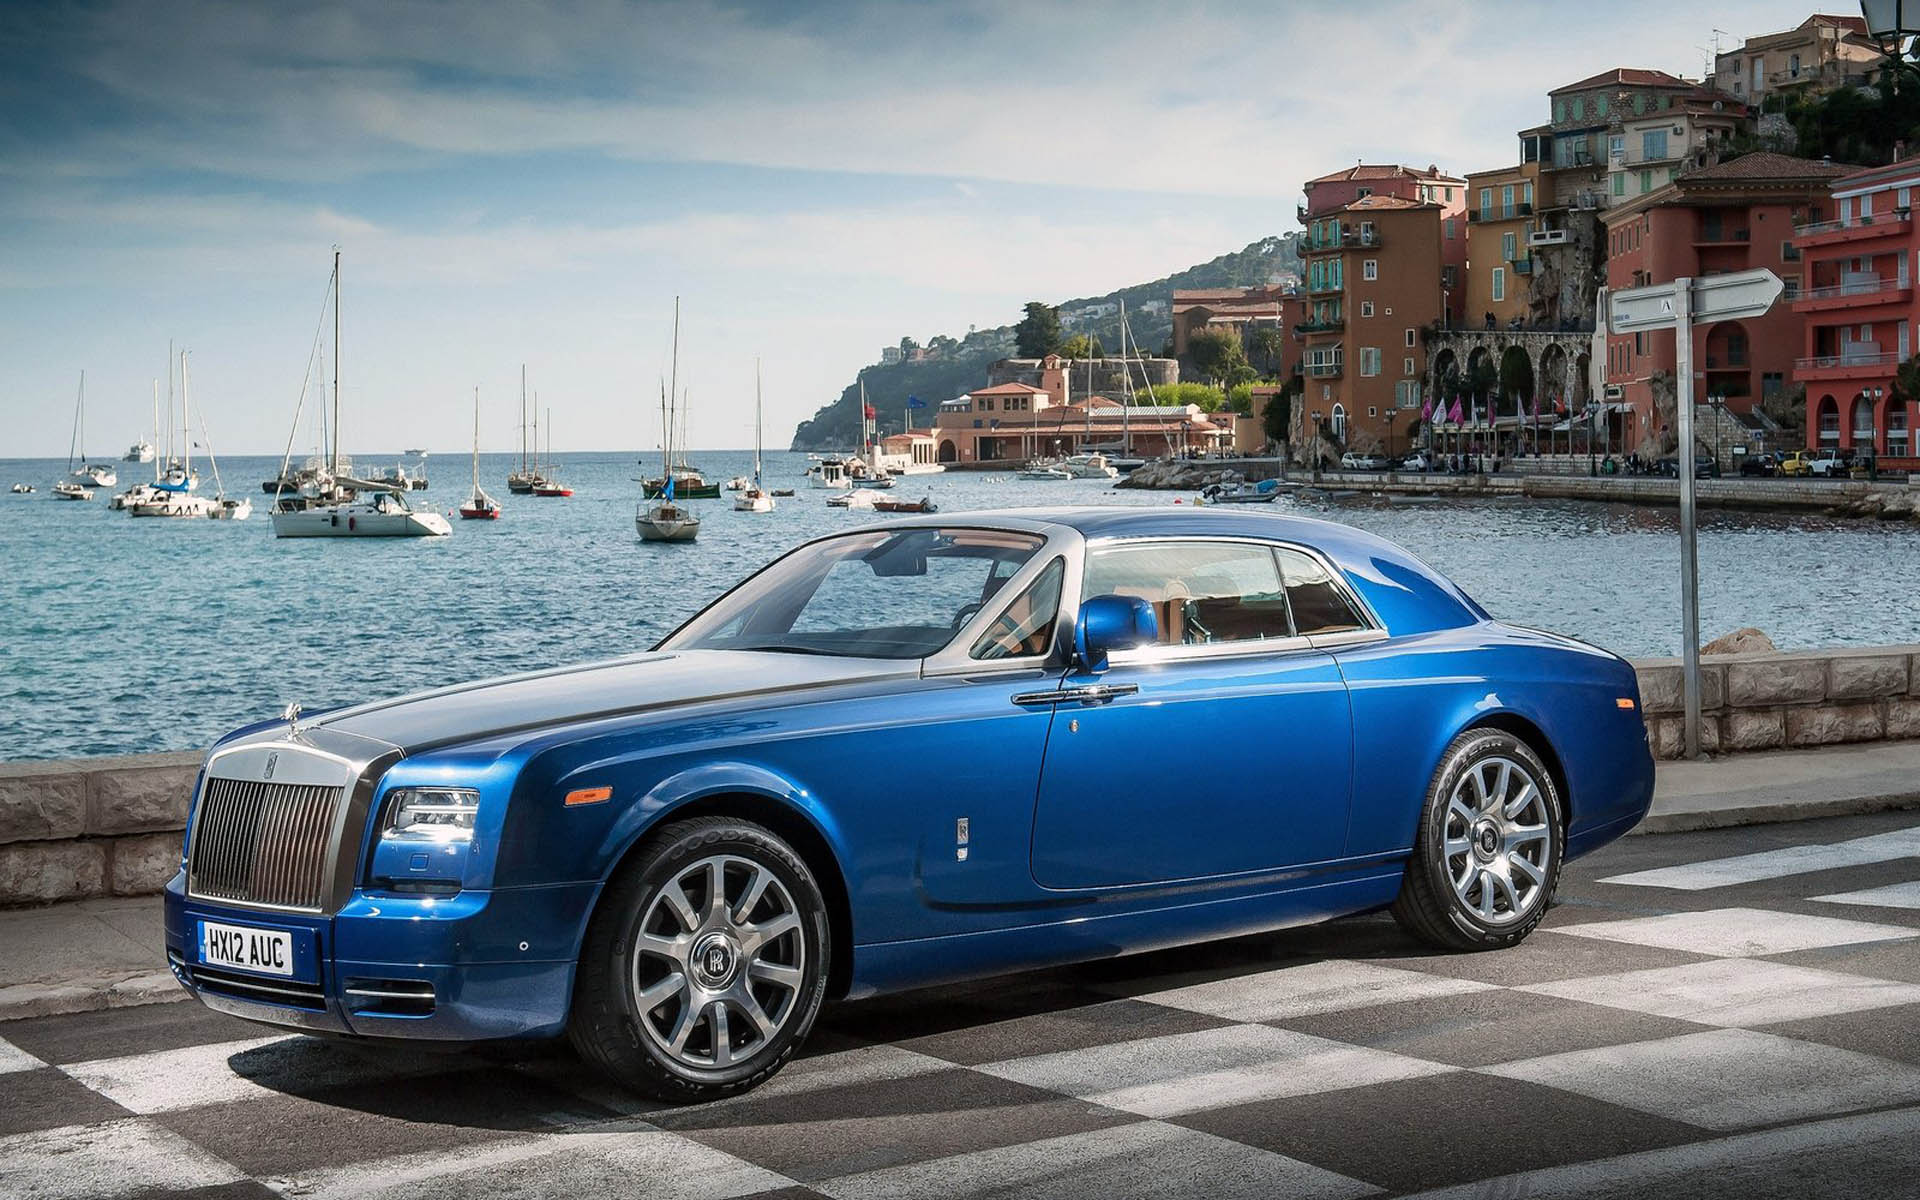 Rolls-Royce Phantom Coupe 11 Free Car Wallpaper ...